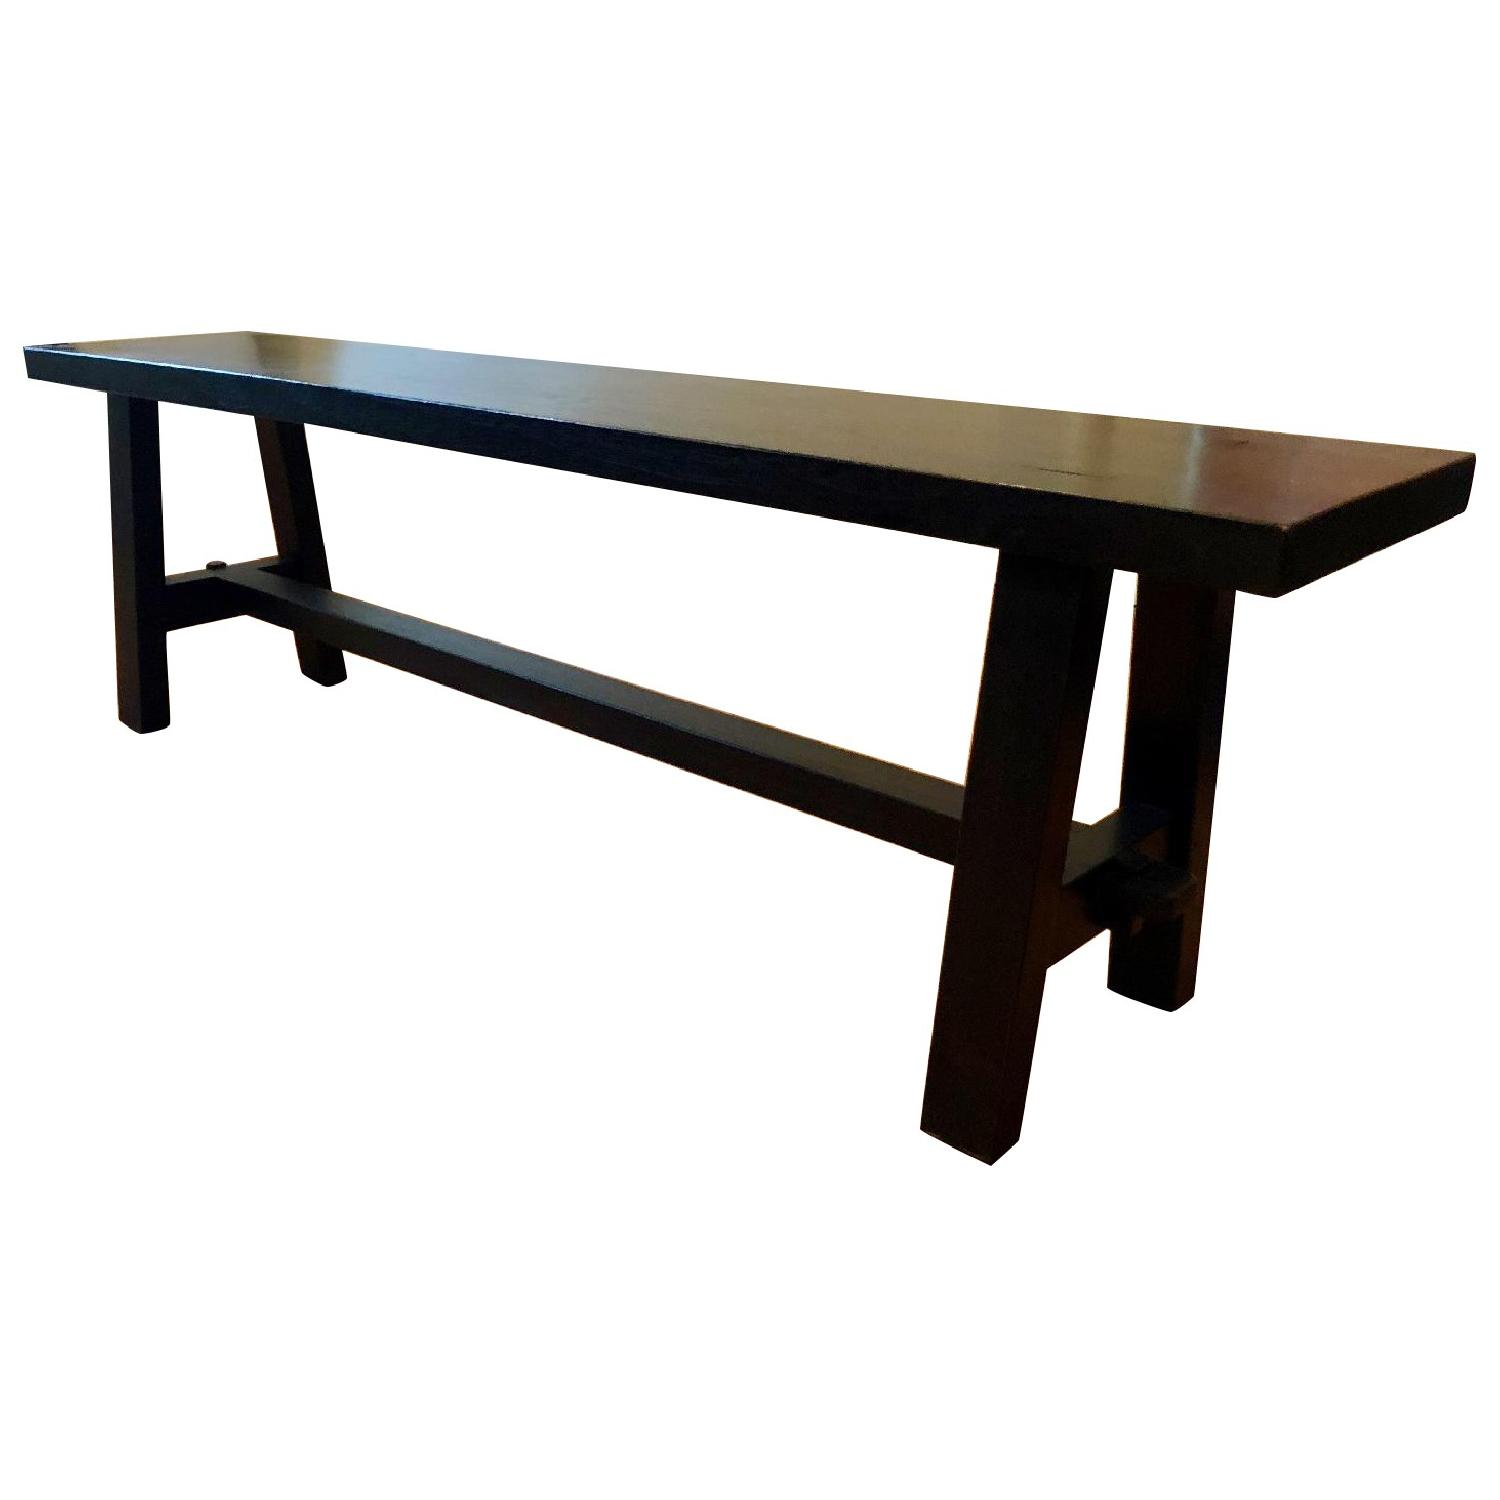 David Smith Solid Teak Bench - image-0